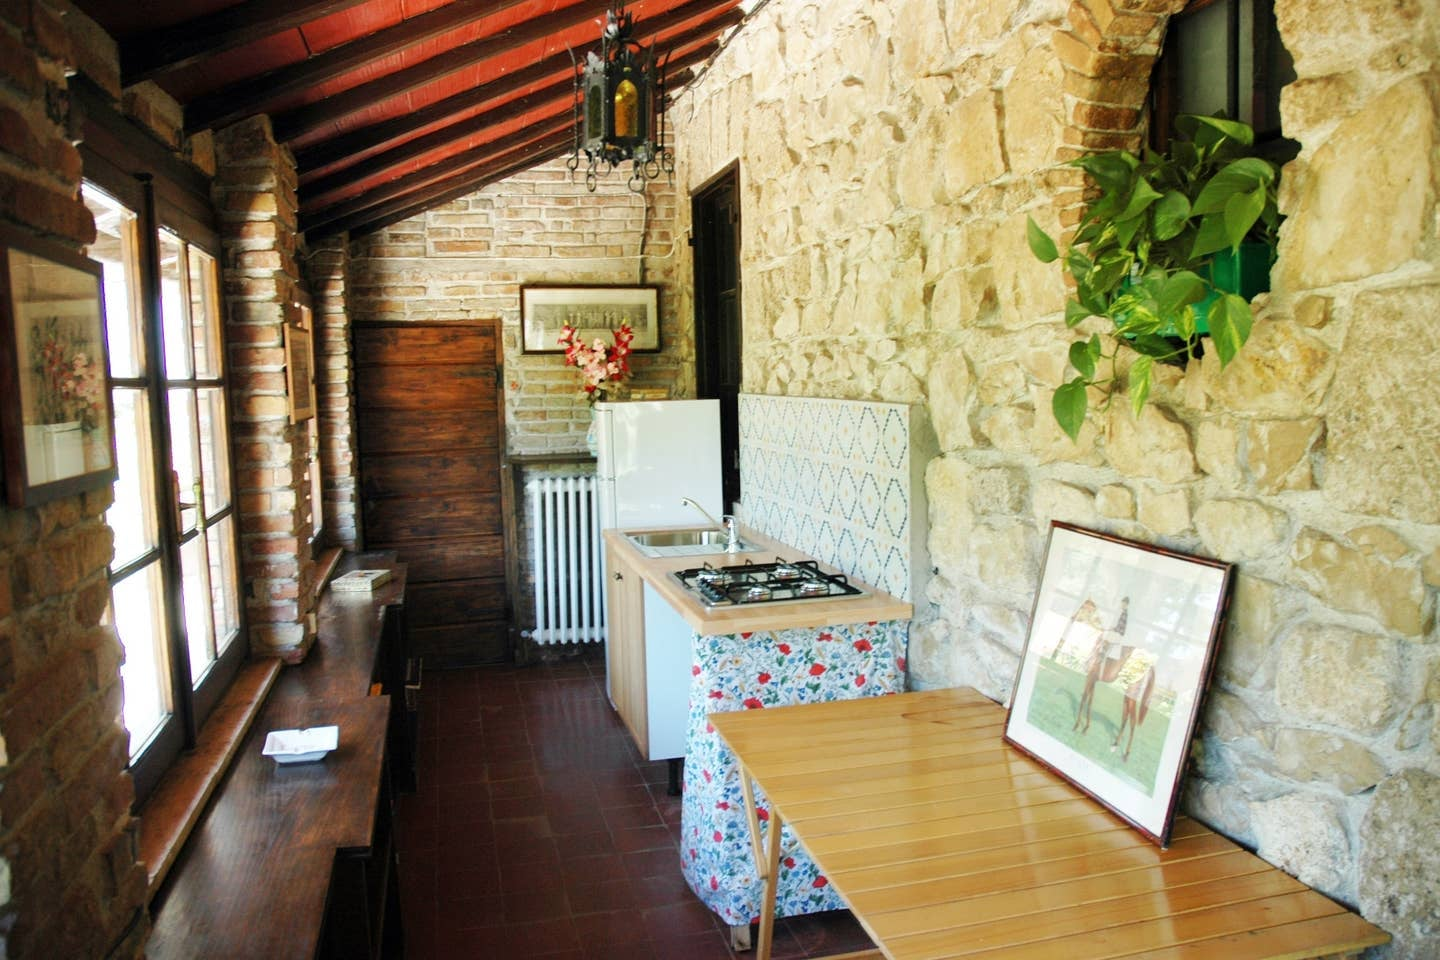 Rent Marianne S Italian Villa In Normal People On Airbnb Popsugar Smart Living